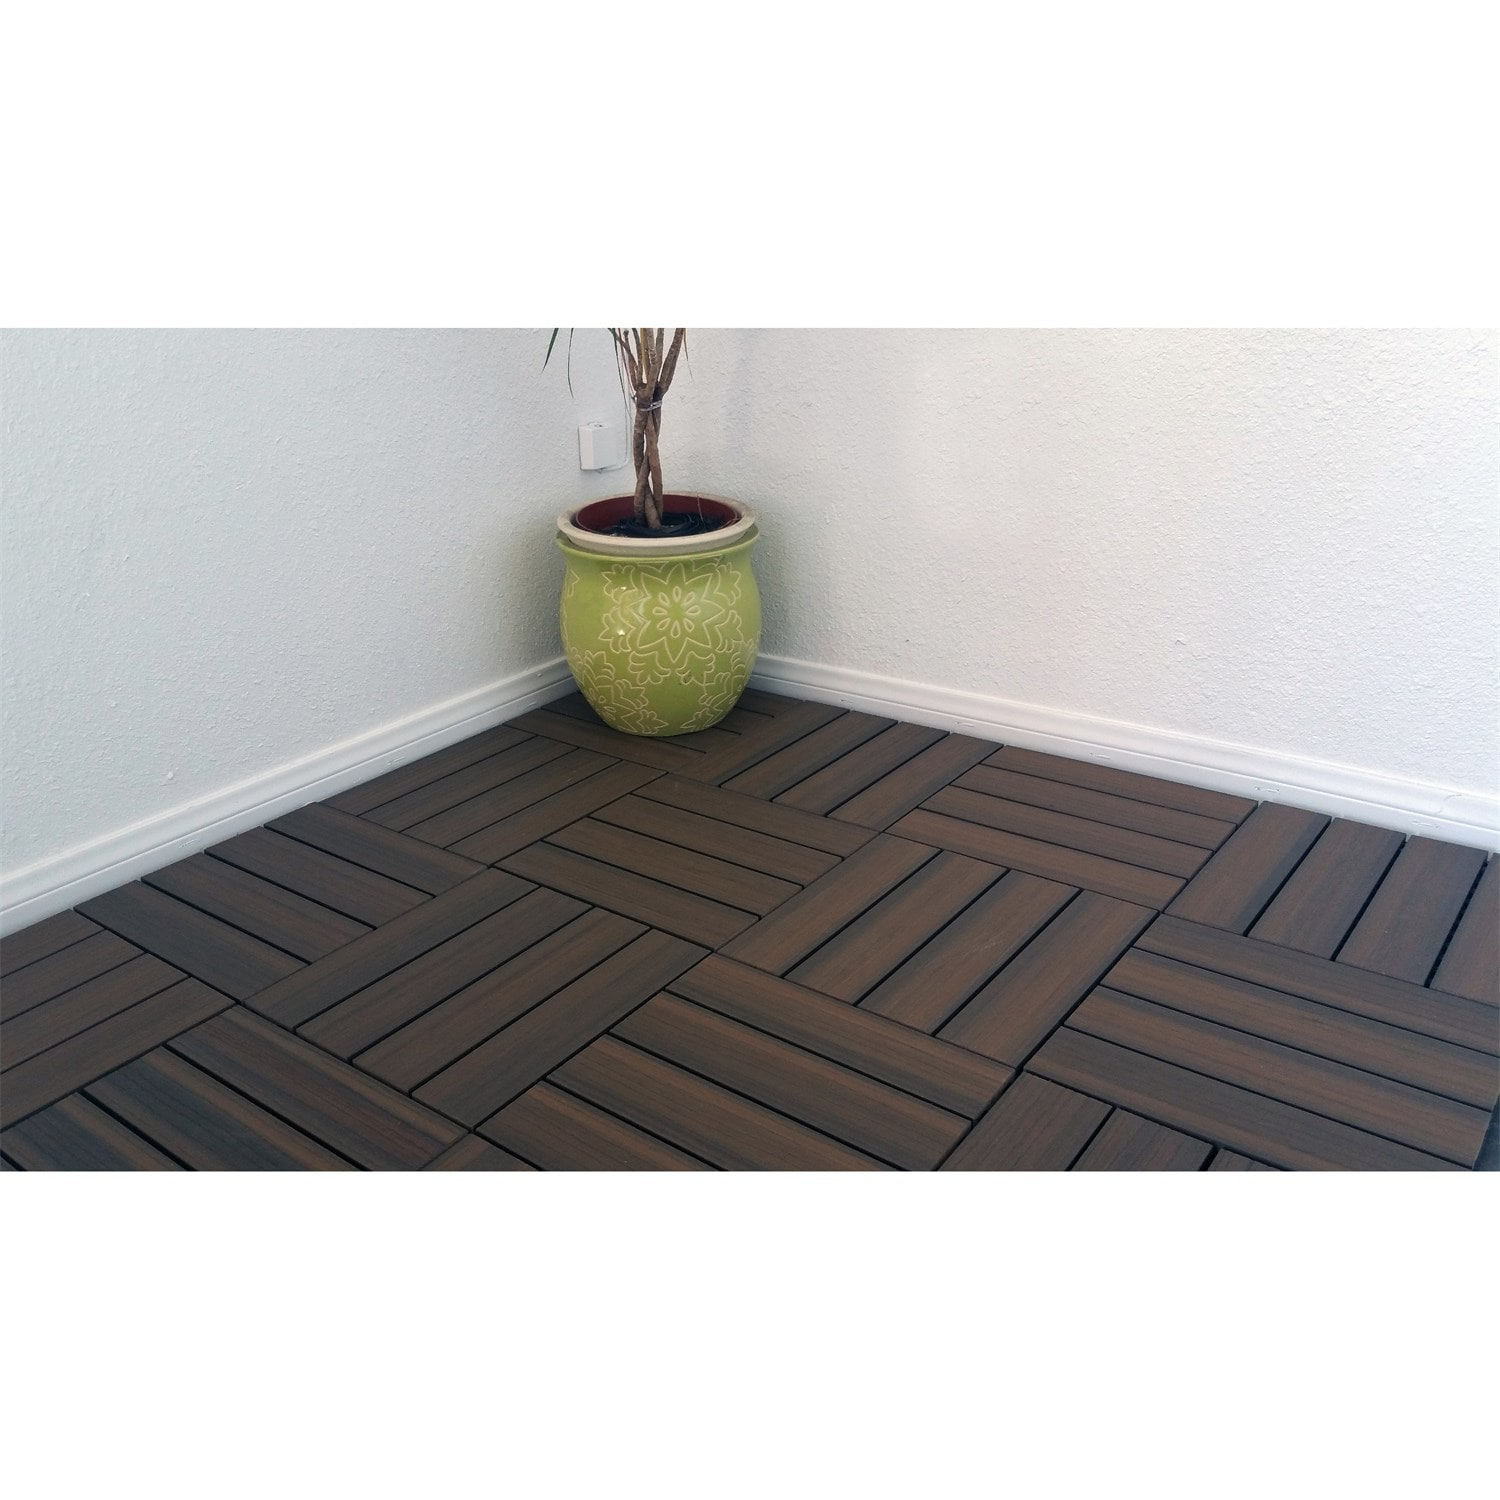 Superwood Deck Tiles Composite Cedar Snap To Install No Maintenance Box Of 11 Sqft On Free Shipping Today 10758802